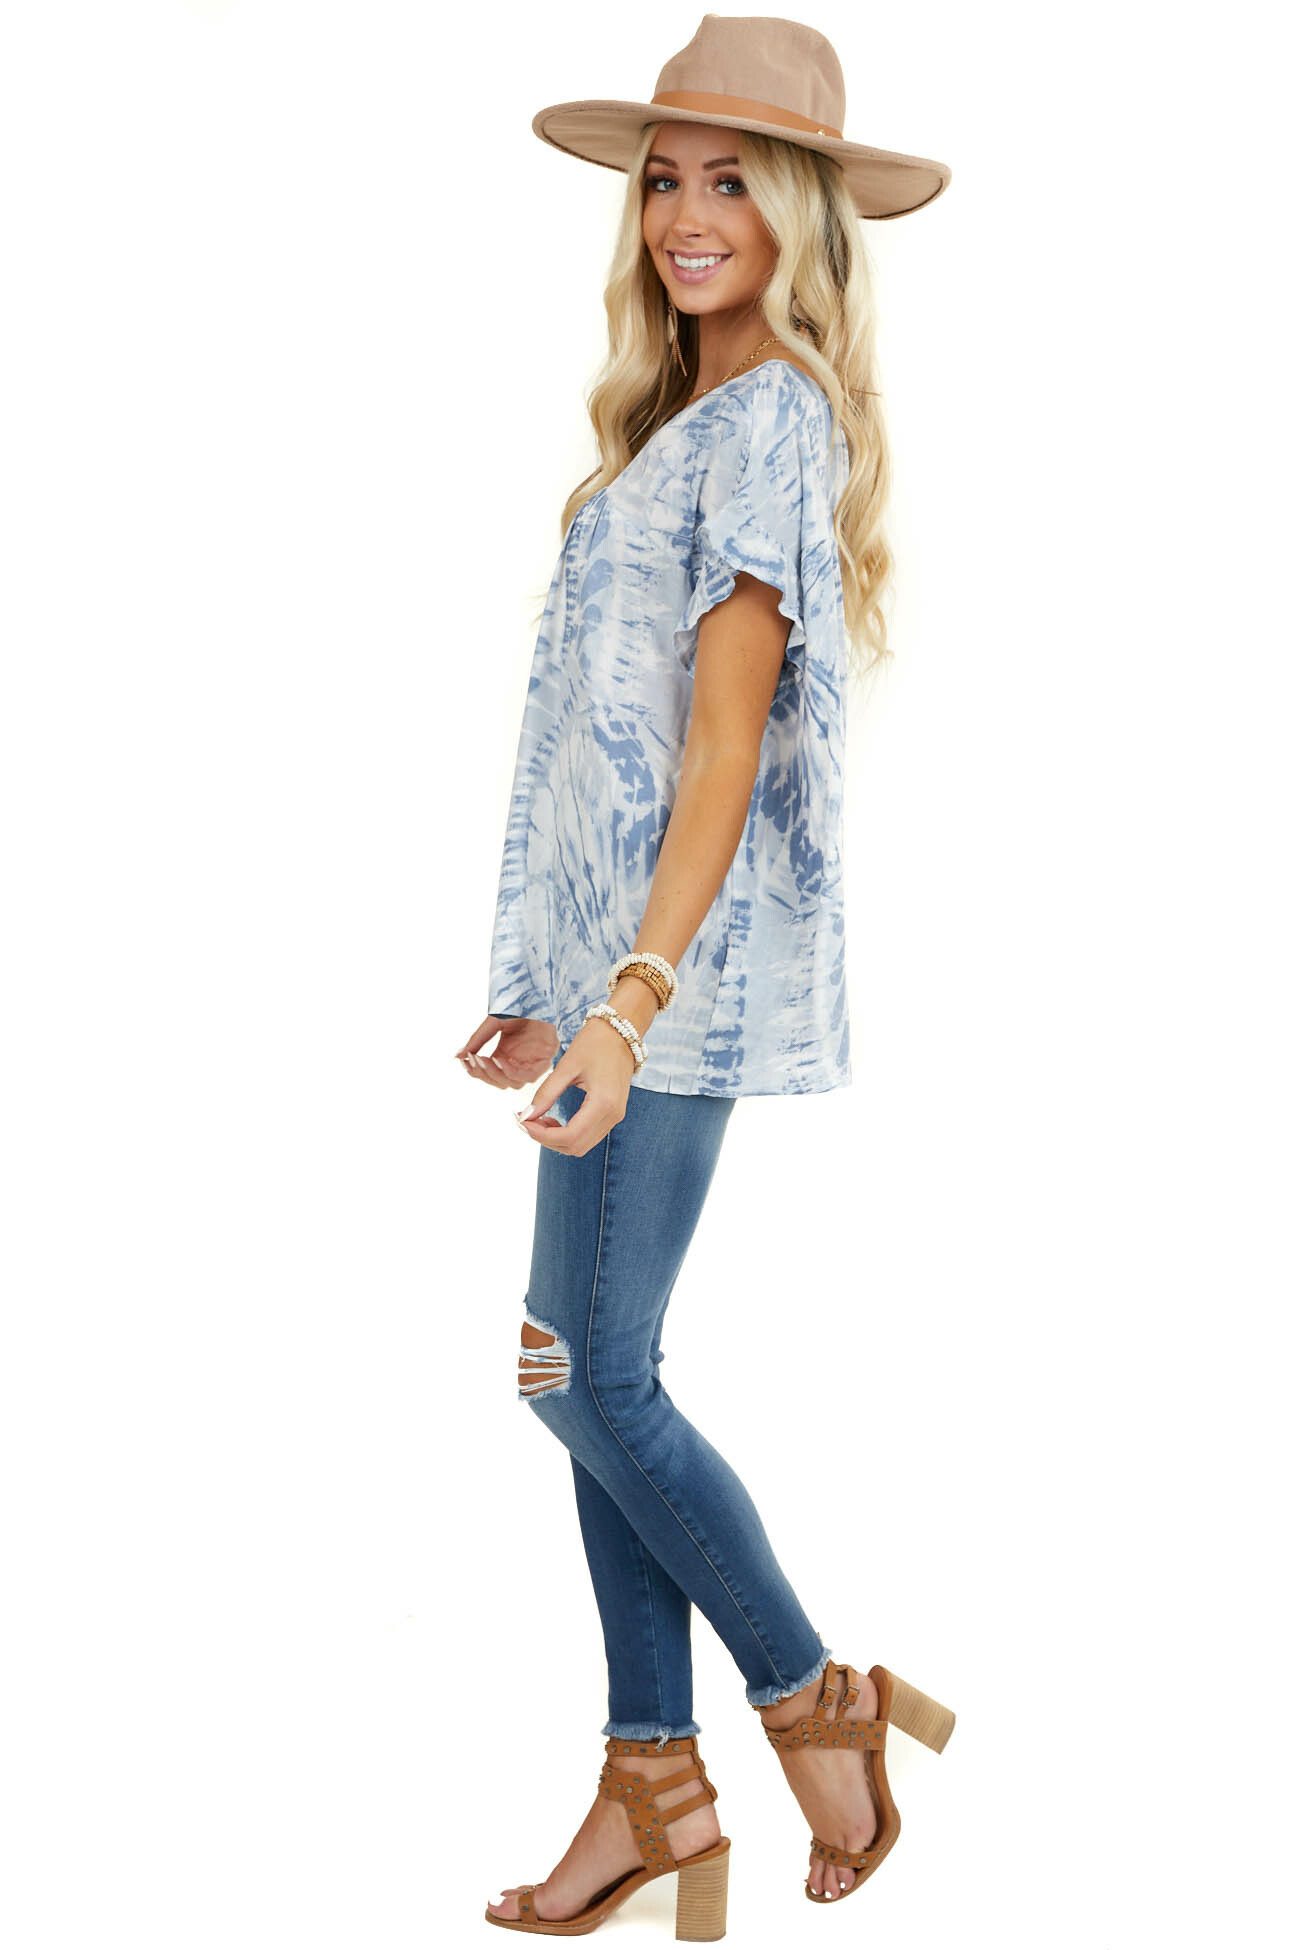 Slate Blue Tie Dye Blouse with Short Ruffle Sleeves